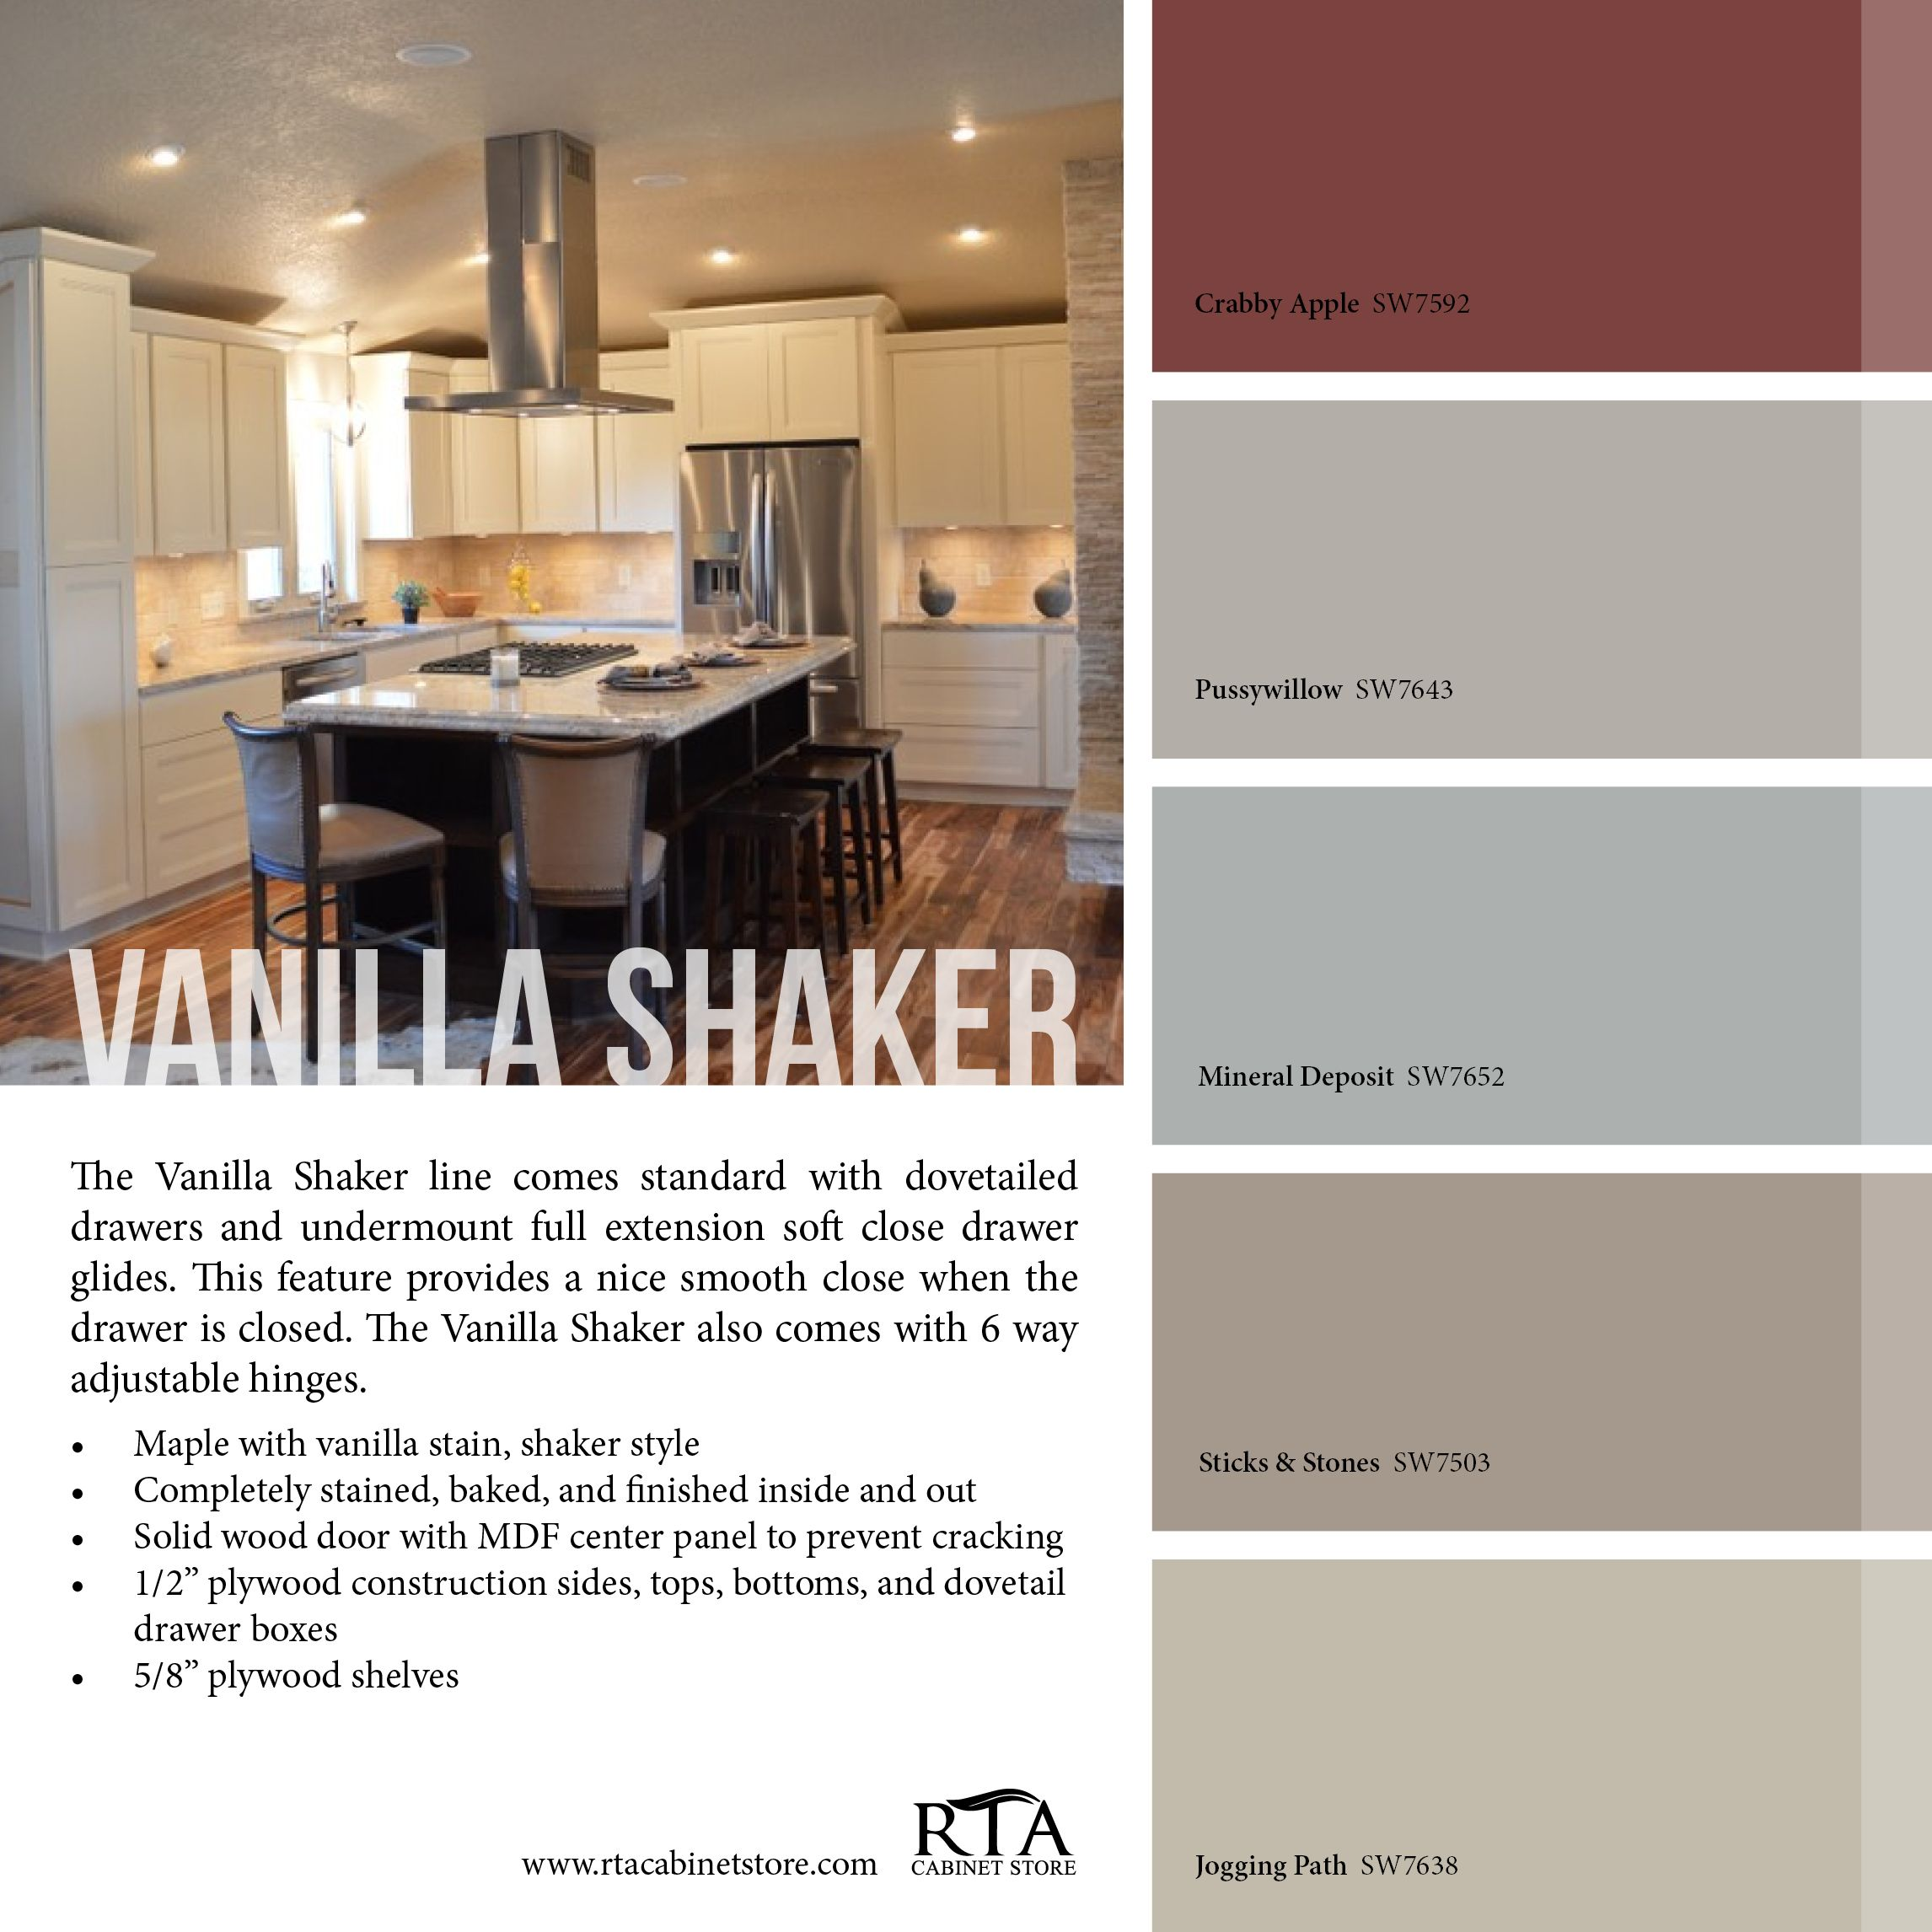 Kitchen Kitchen Paint Colors With Oak Cabinets Kitchen: Color Palette To Go With Our Vanilla Shaker Kitchen